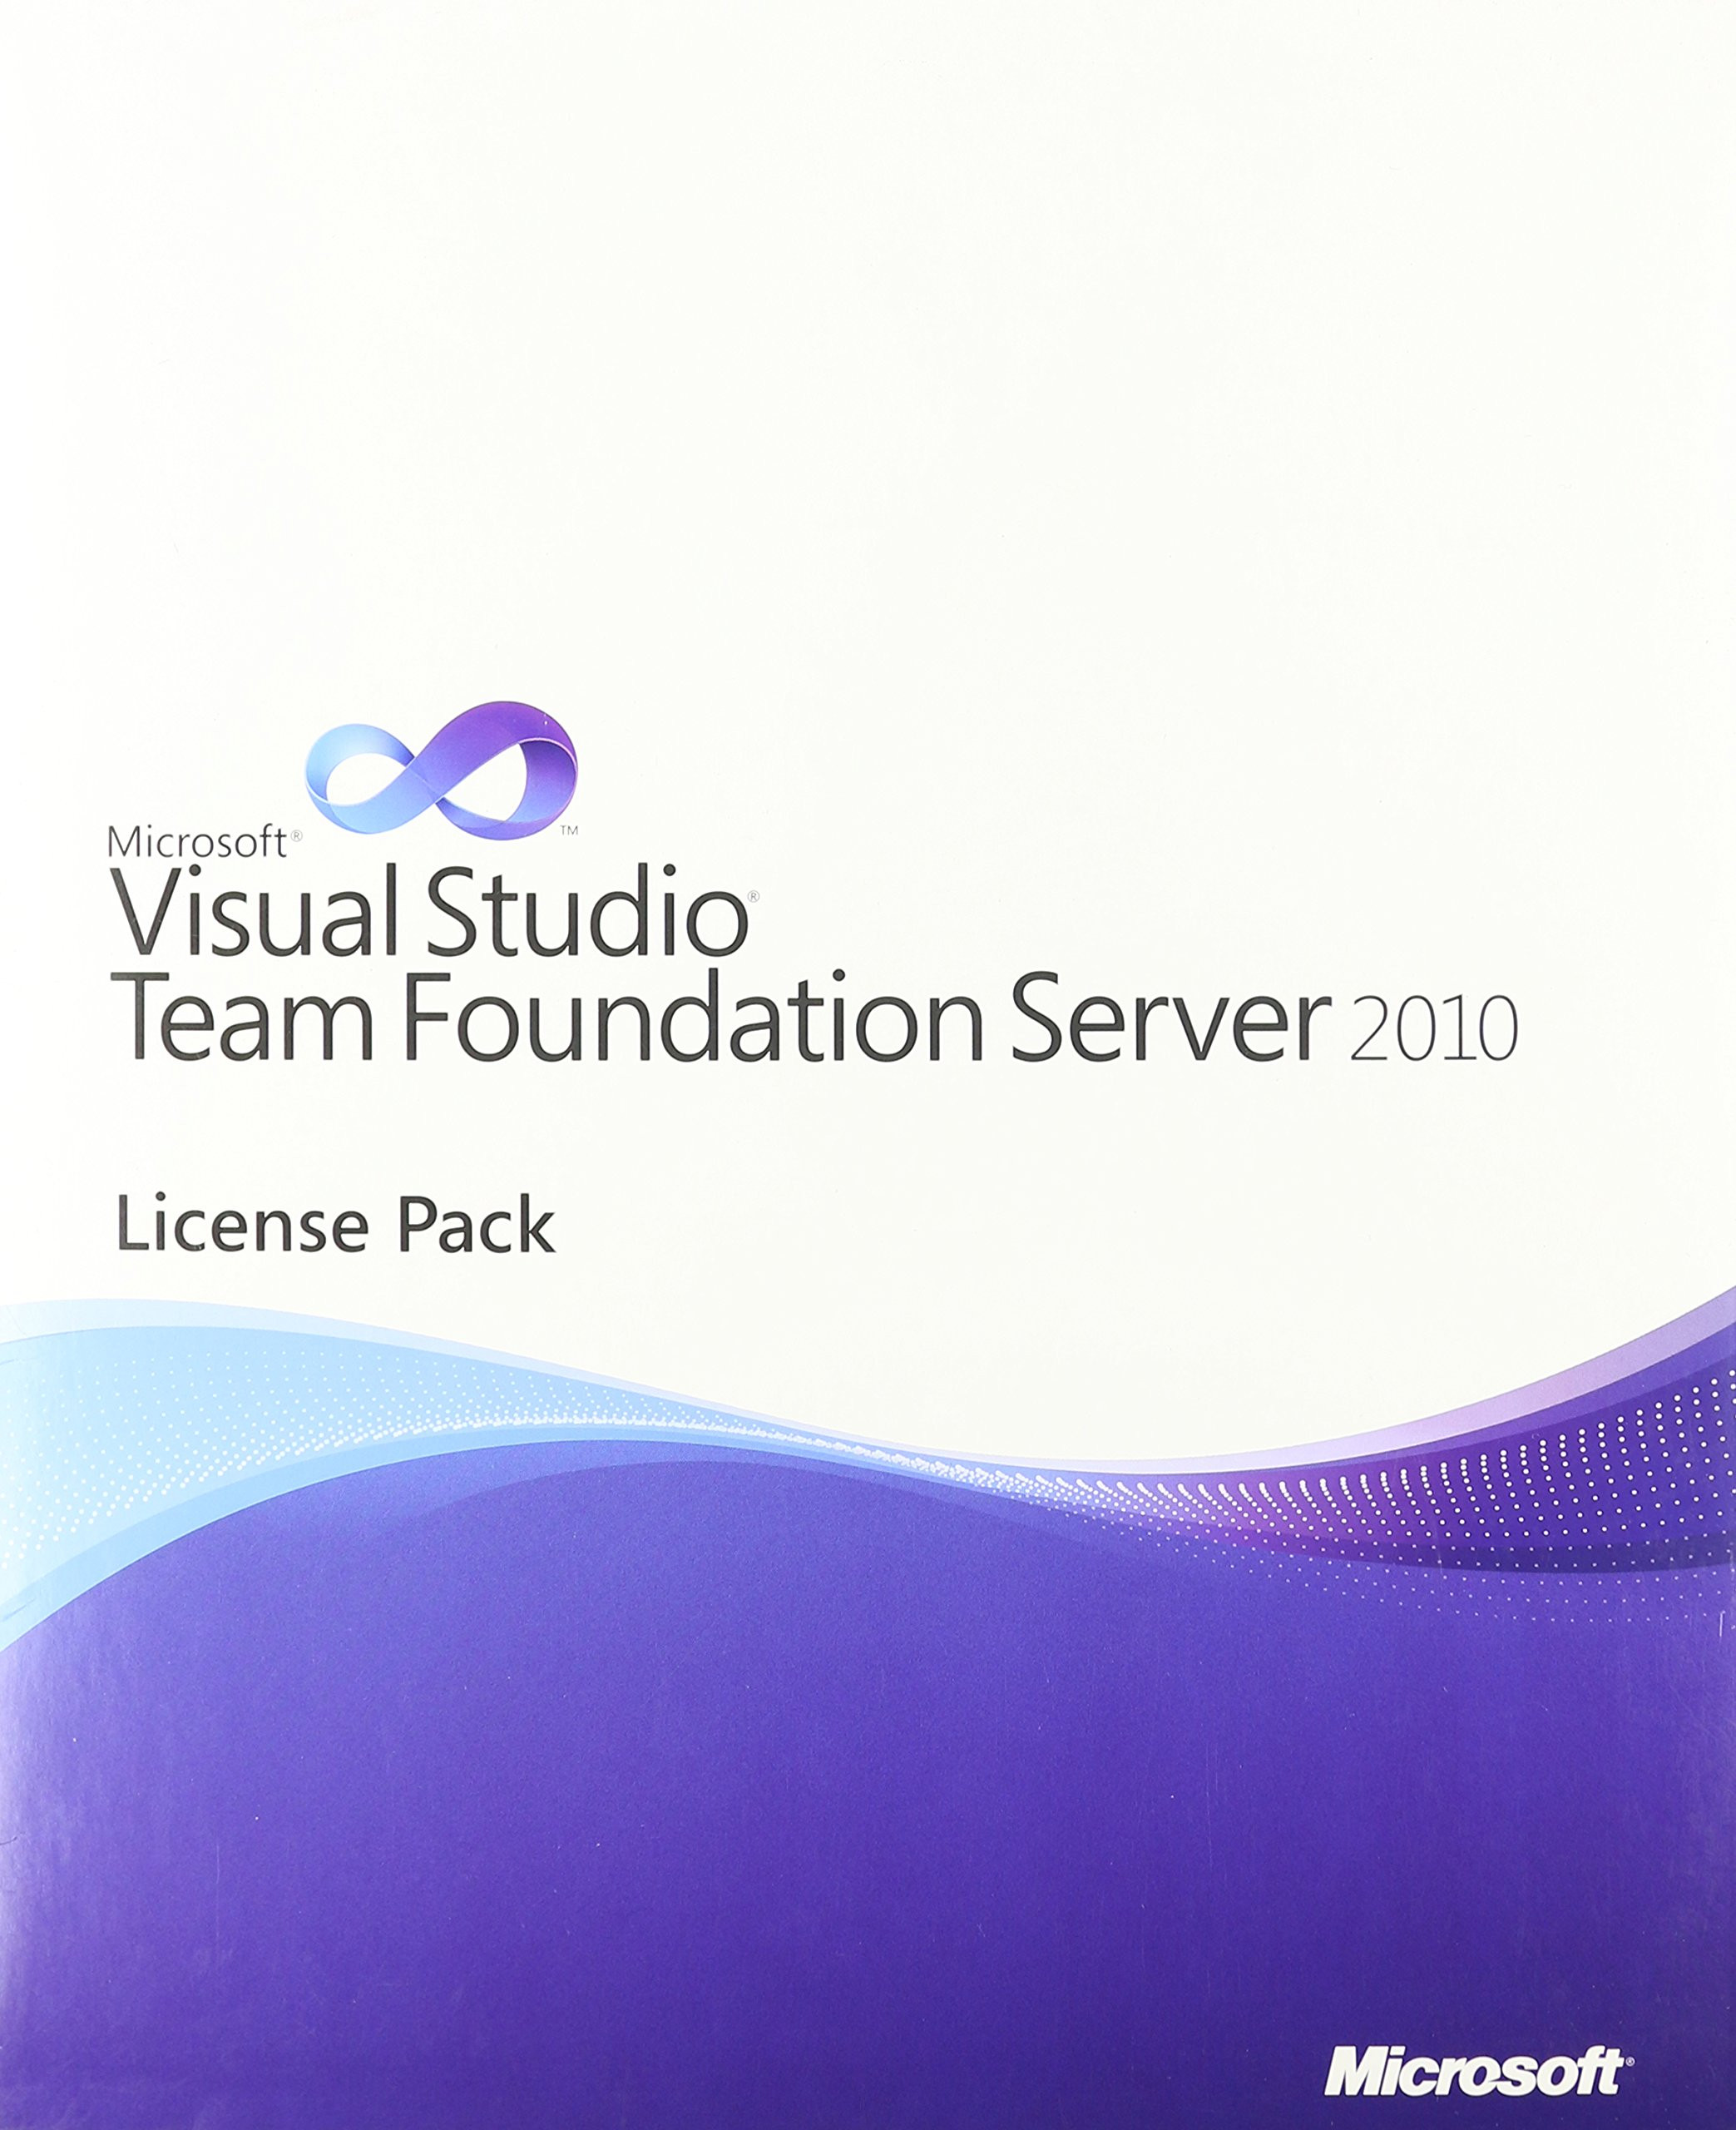 Visual Studio Team Foundation Server 2010 Client Access License (Device) by Microsoft